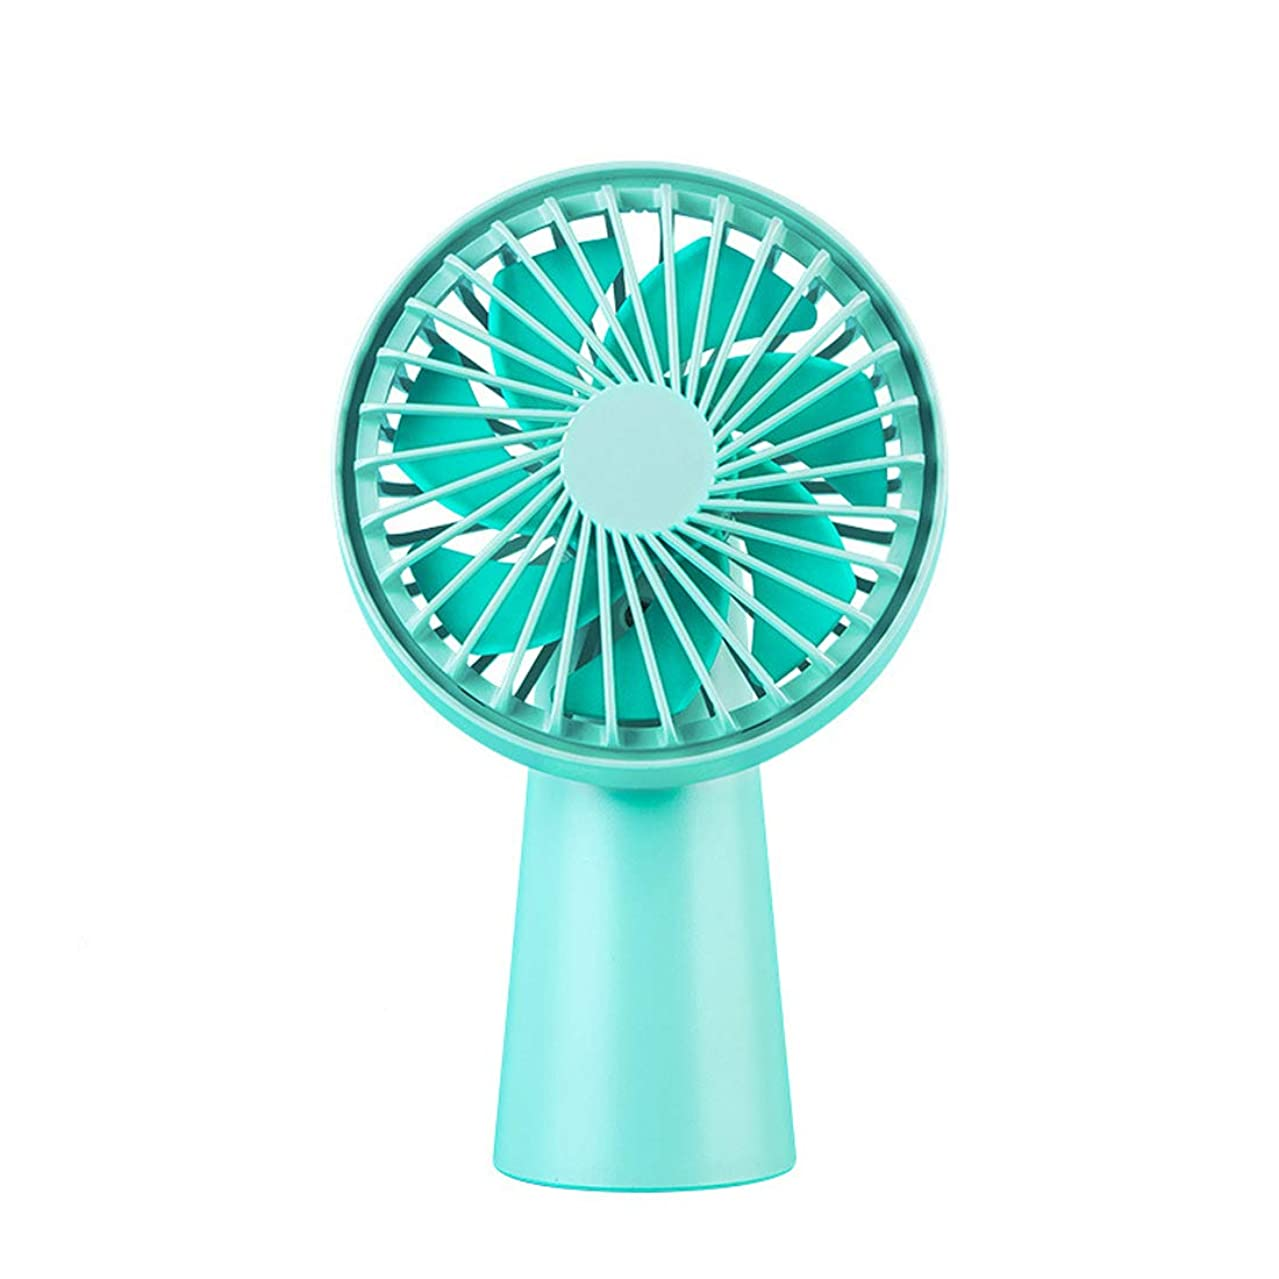 Dollcora Mini USB Rechargeable Fan, Battery Operated Portable Handheld Fan, Powerful and Quiet Fan Cooling for Room and Outdoor (Blue)